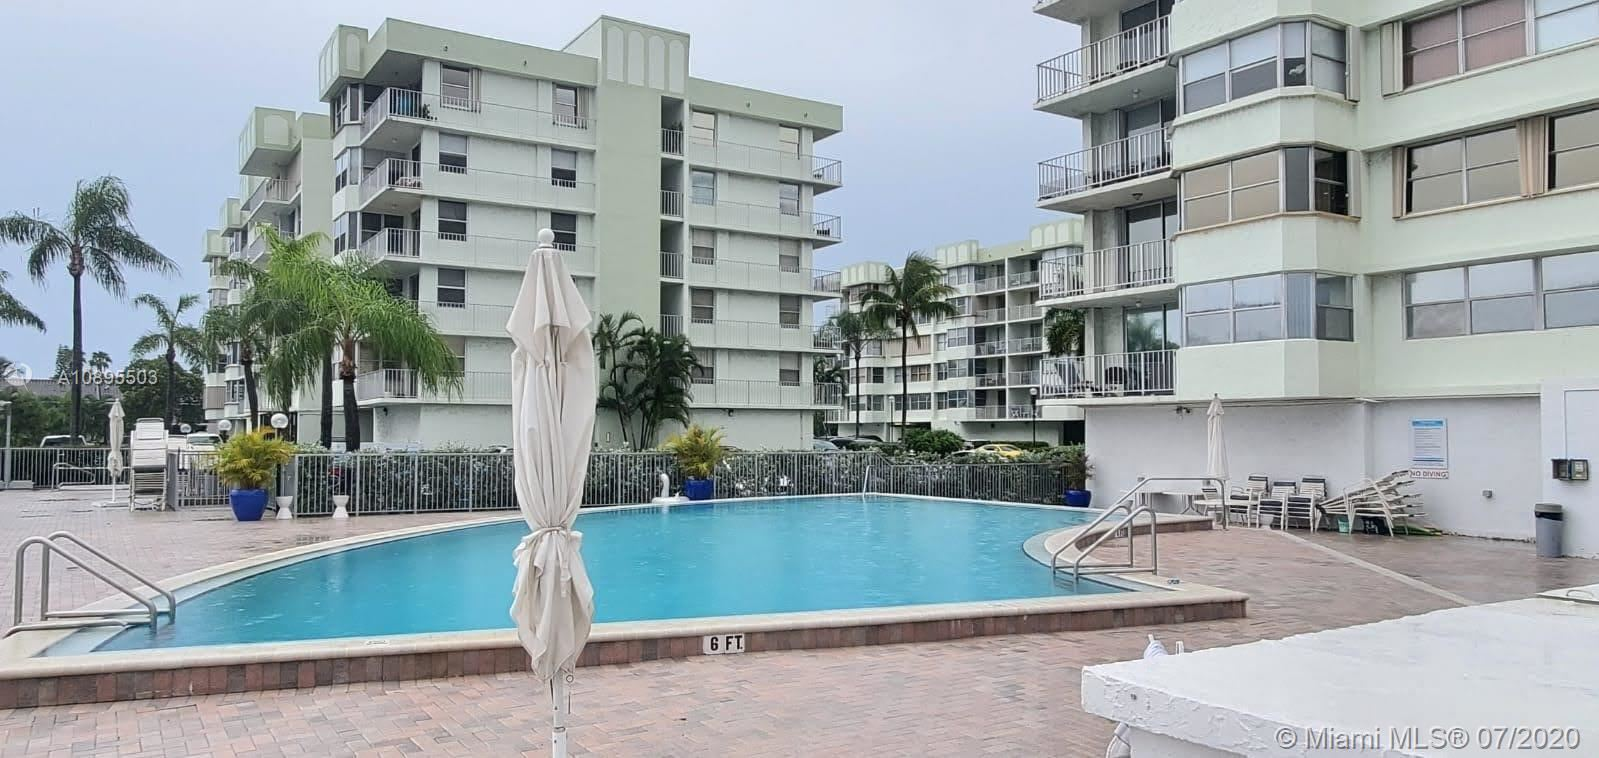 16546 NE 26th Ave #5I, North Miami Beach, FL 33160 - #: A10895503